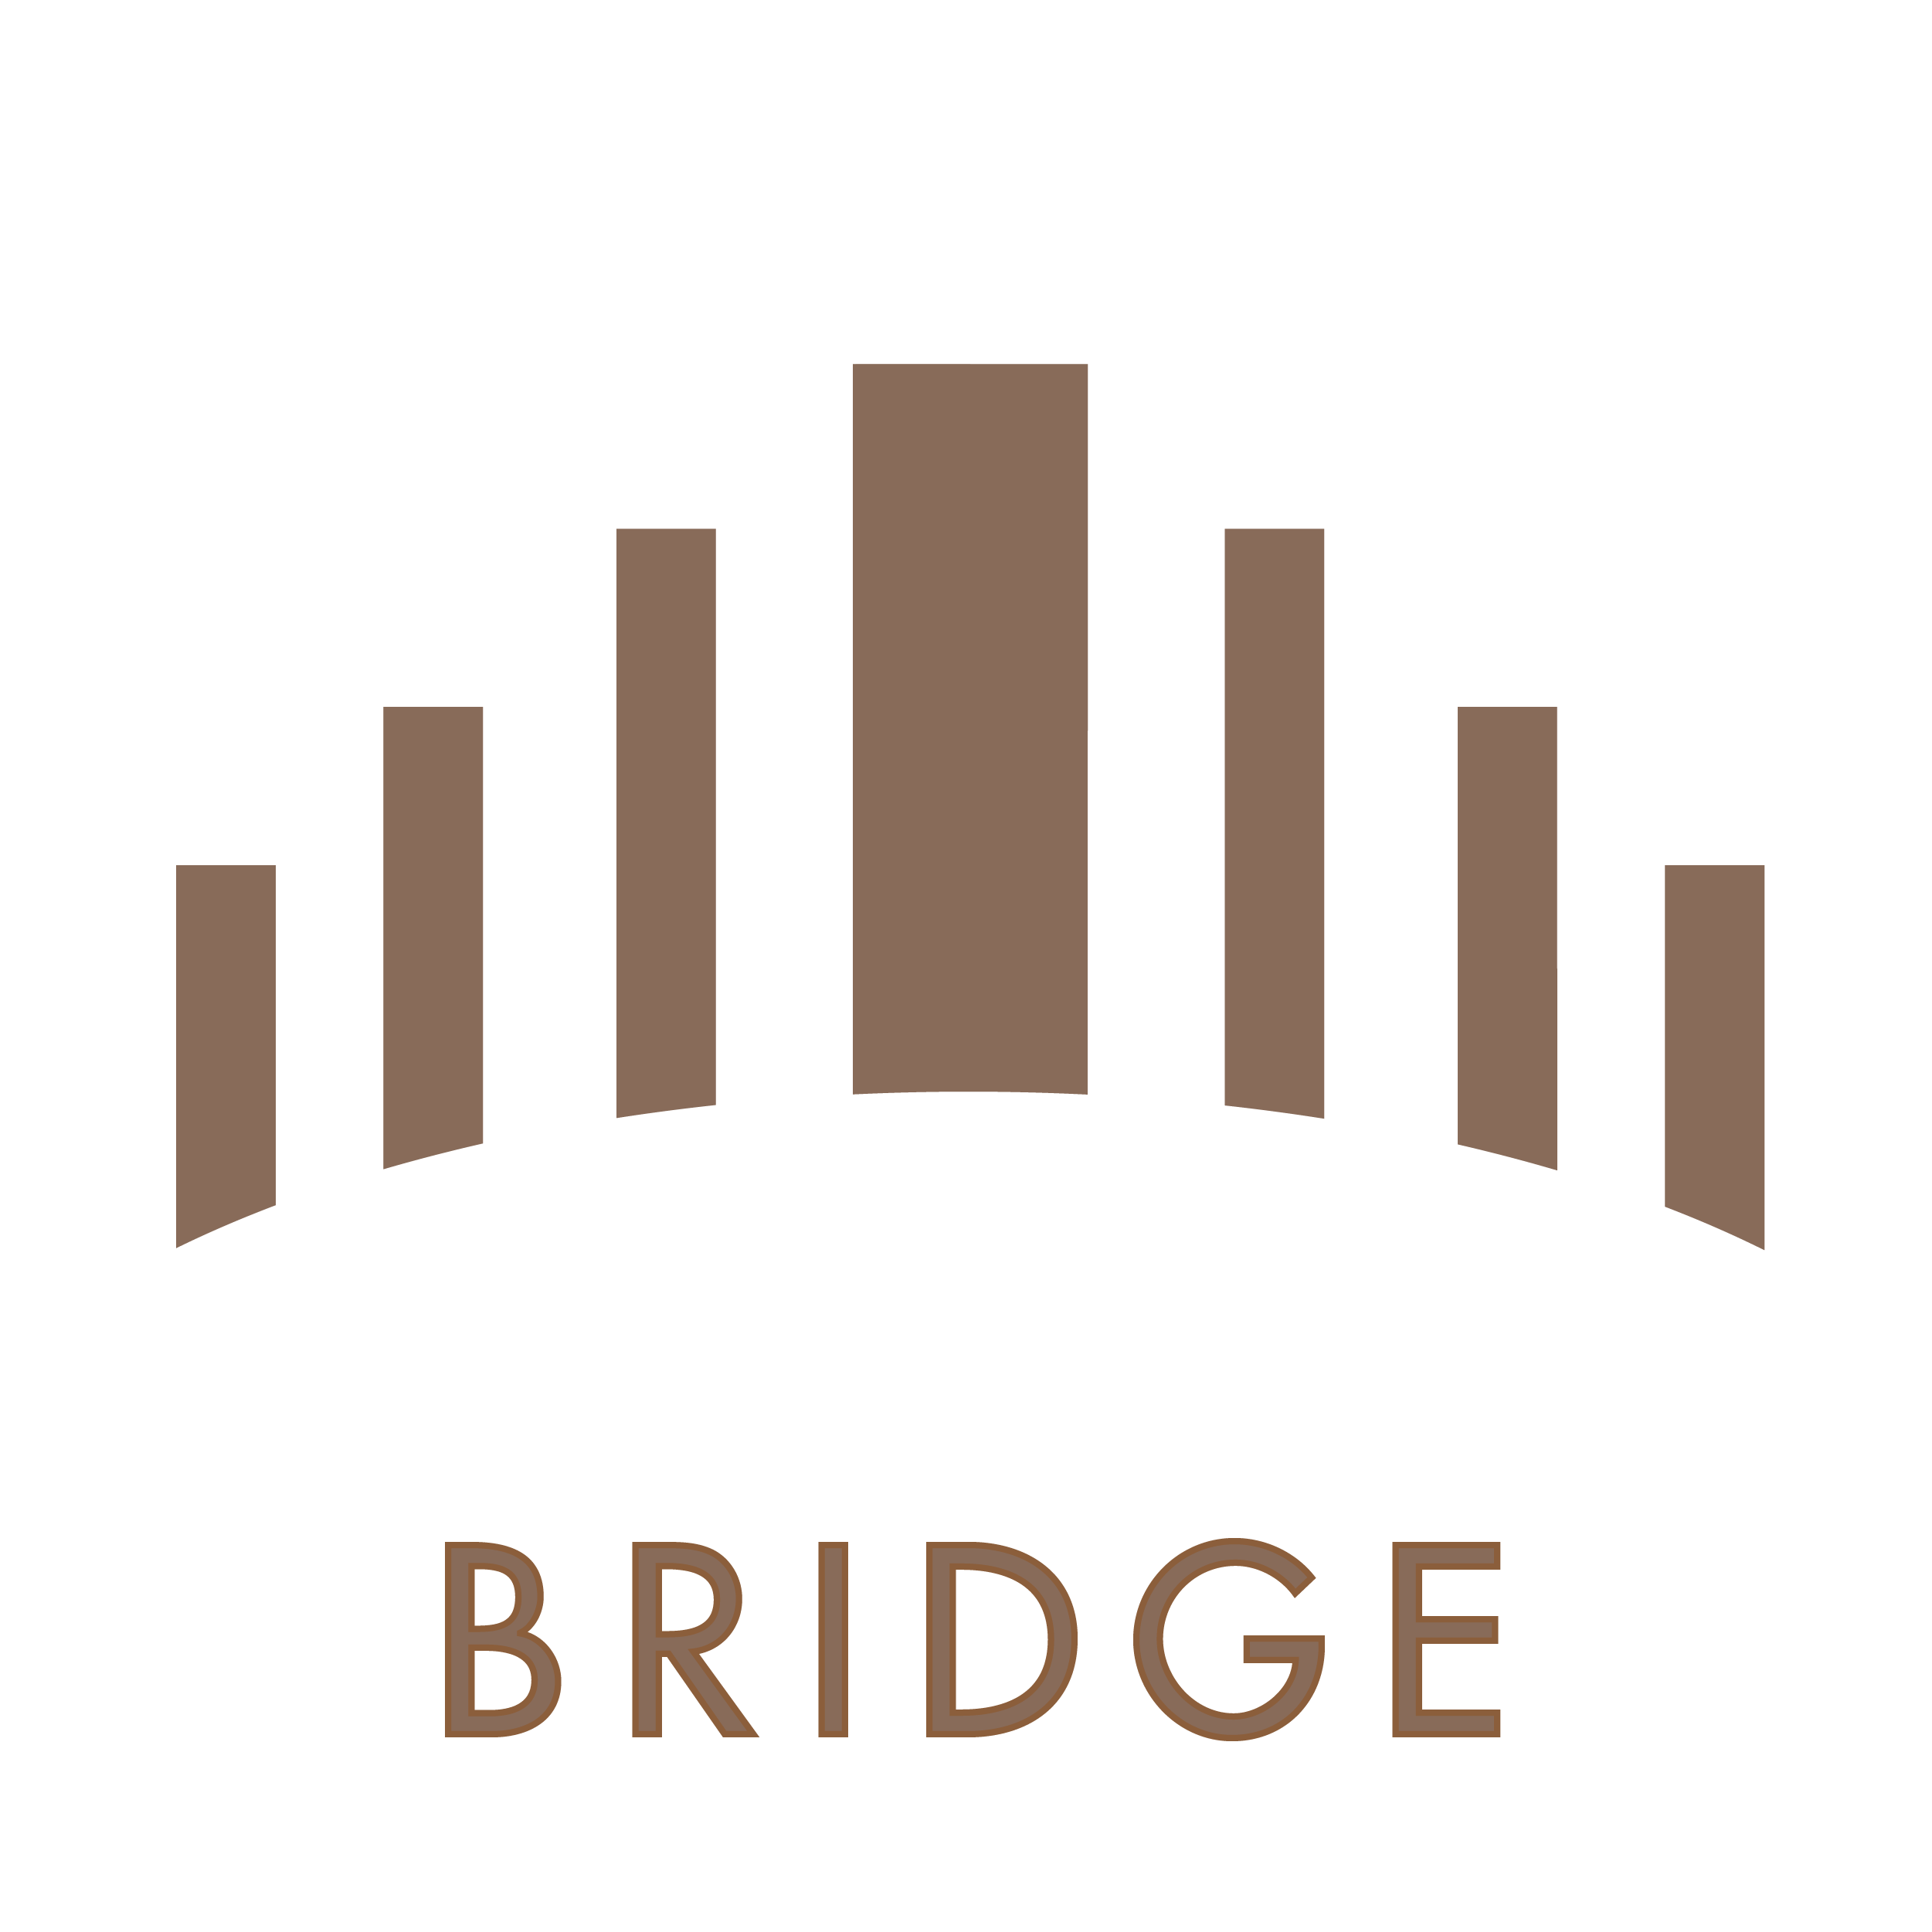 Bridge ONeil Product Icons